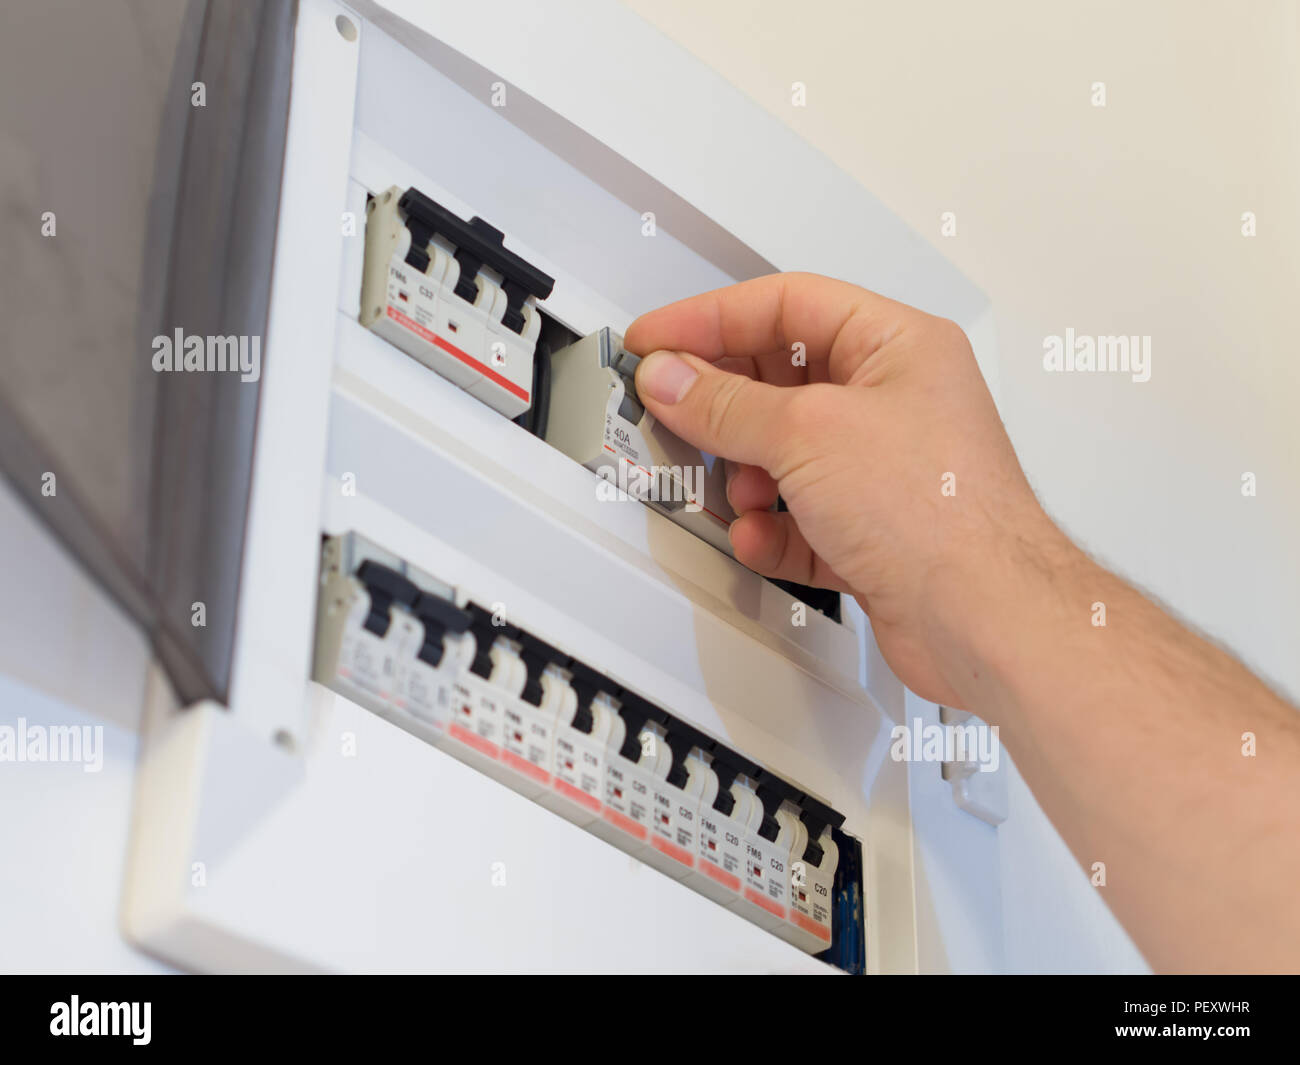 hight resolution of electricity fuse panel and lifting the fuse with hand stock image